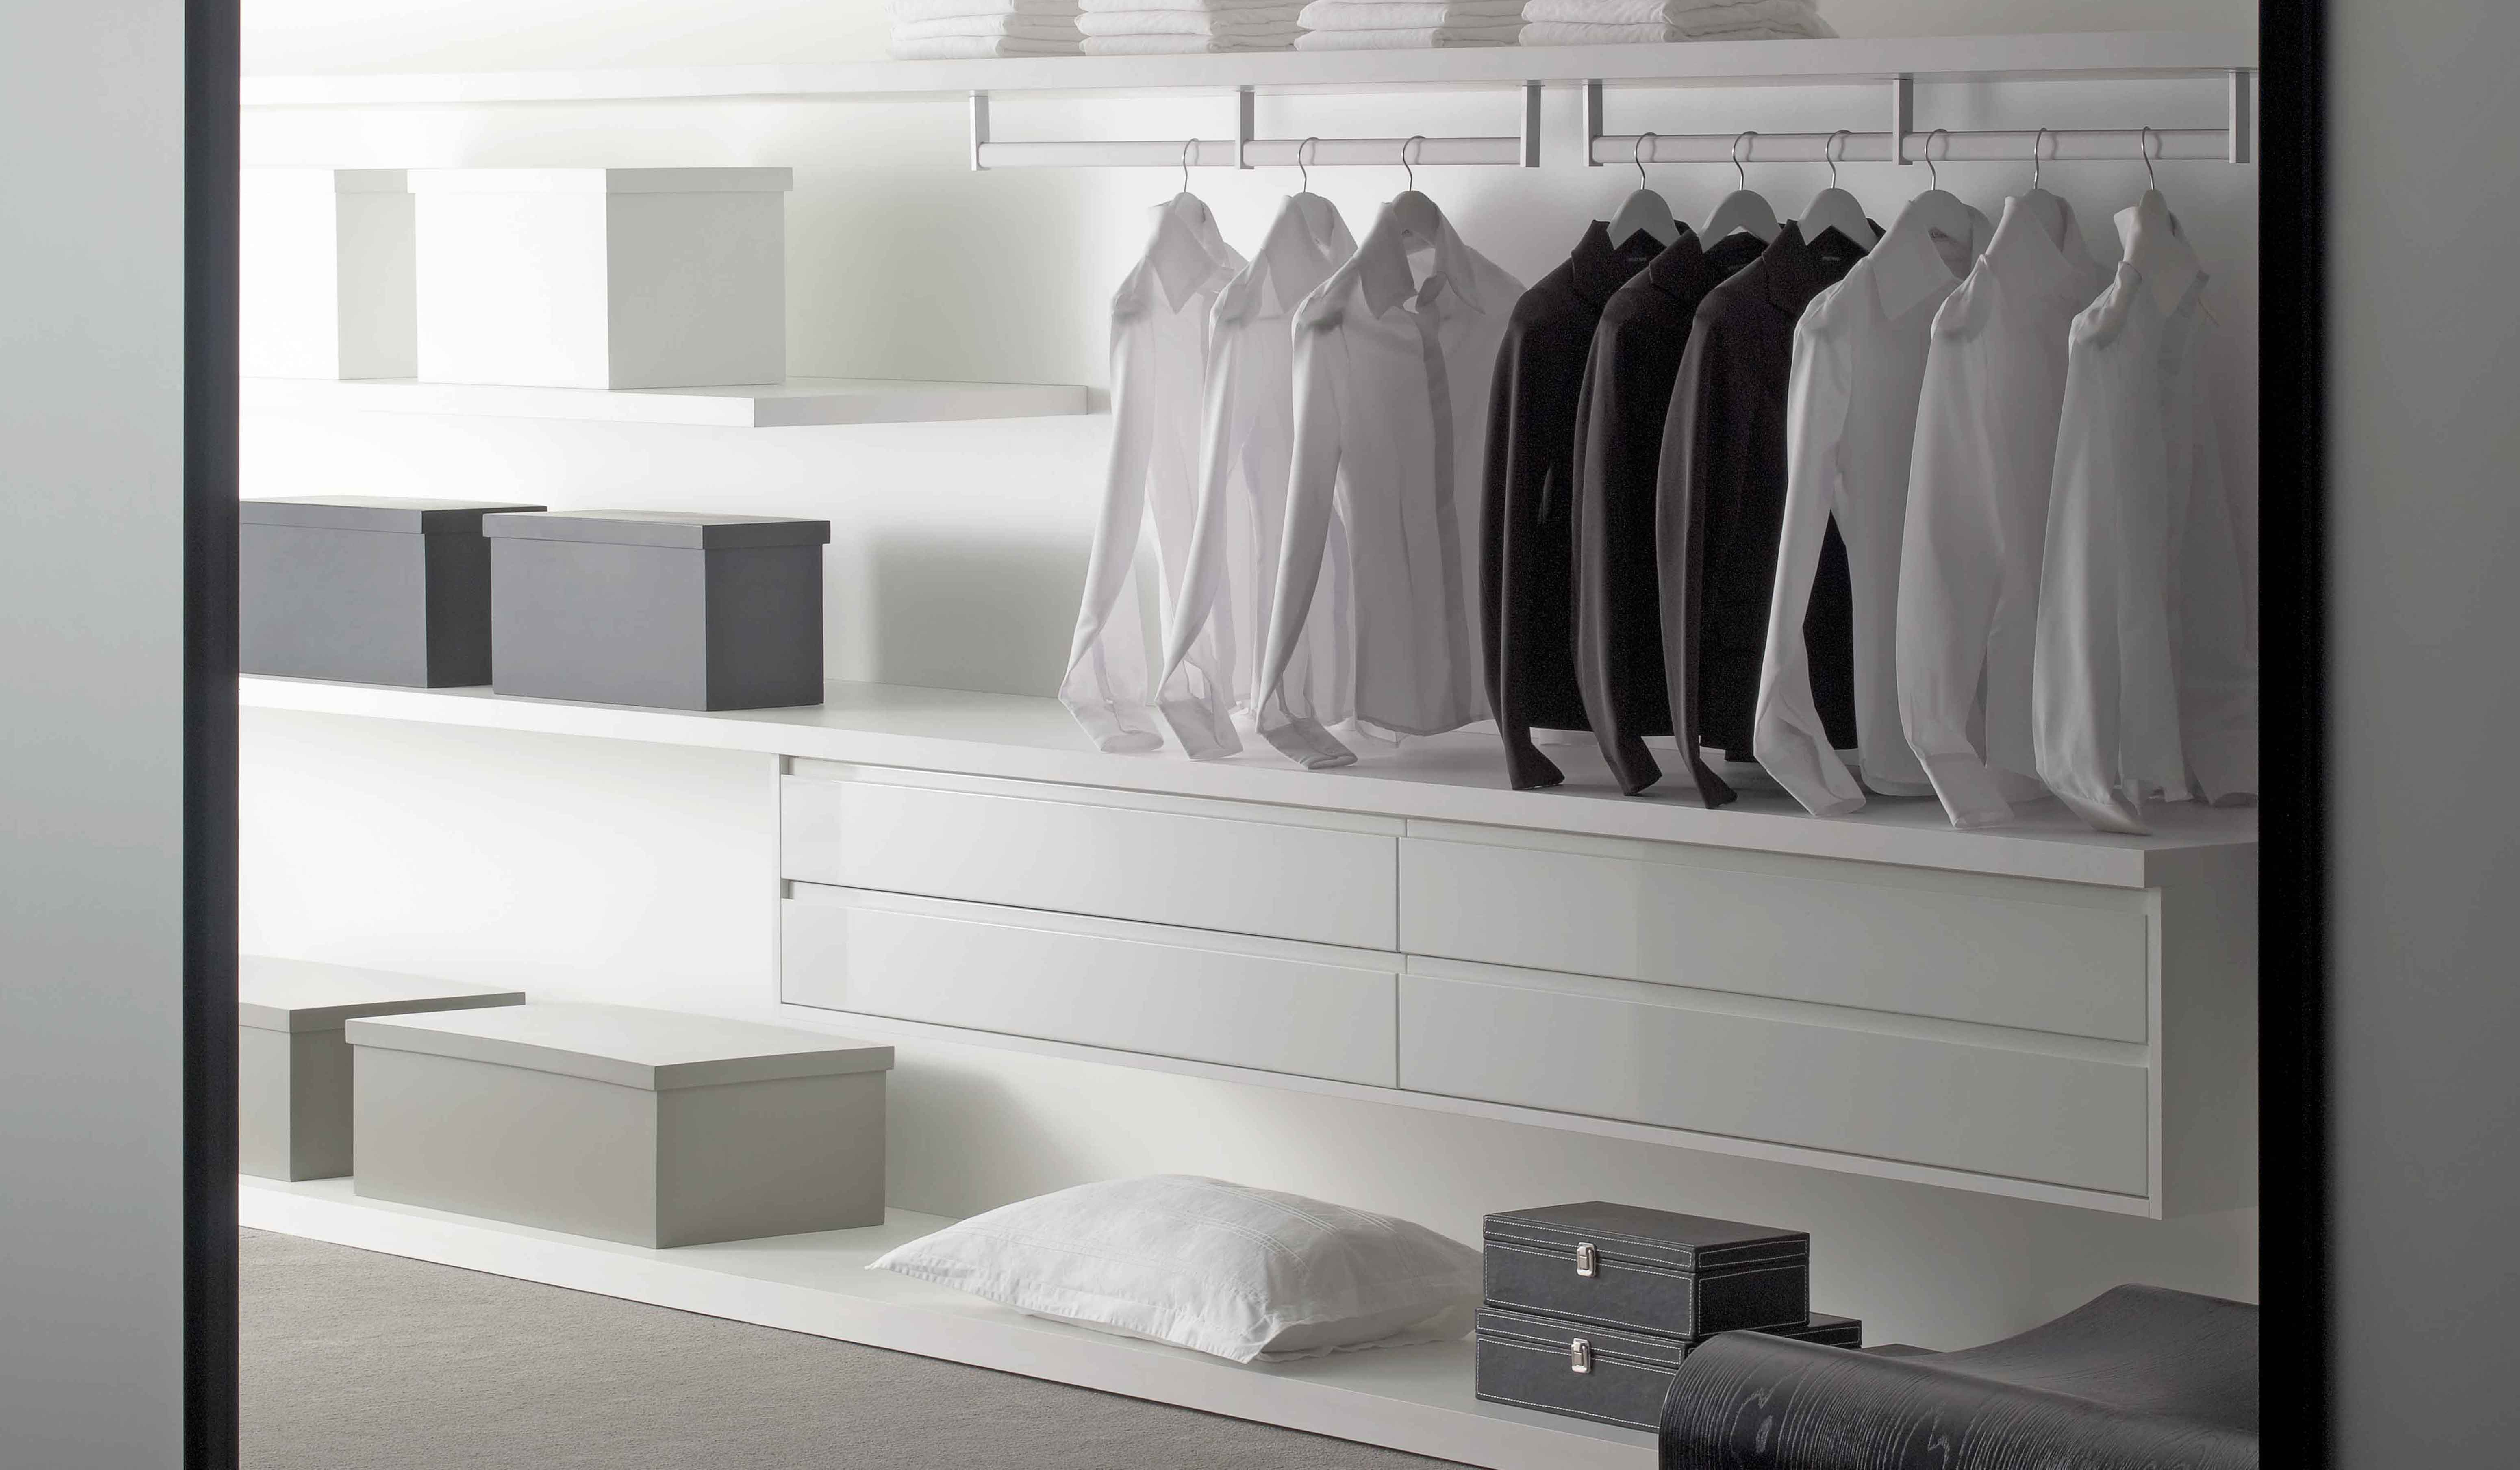 Modern Italian Closet Combining Aesthetics With Efficiency In A Union Of Form And Function. Dell Anno Closets Are Built To Organize Your Sense Of Style